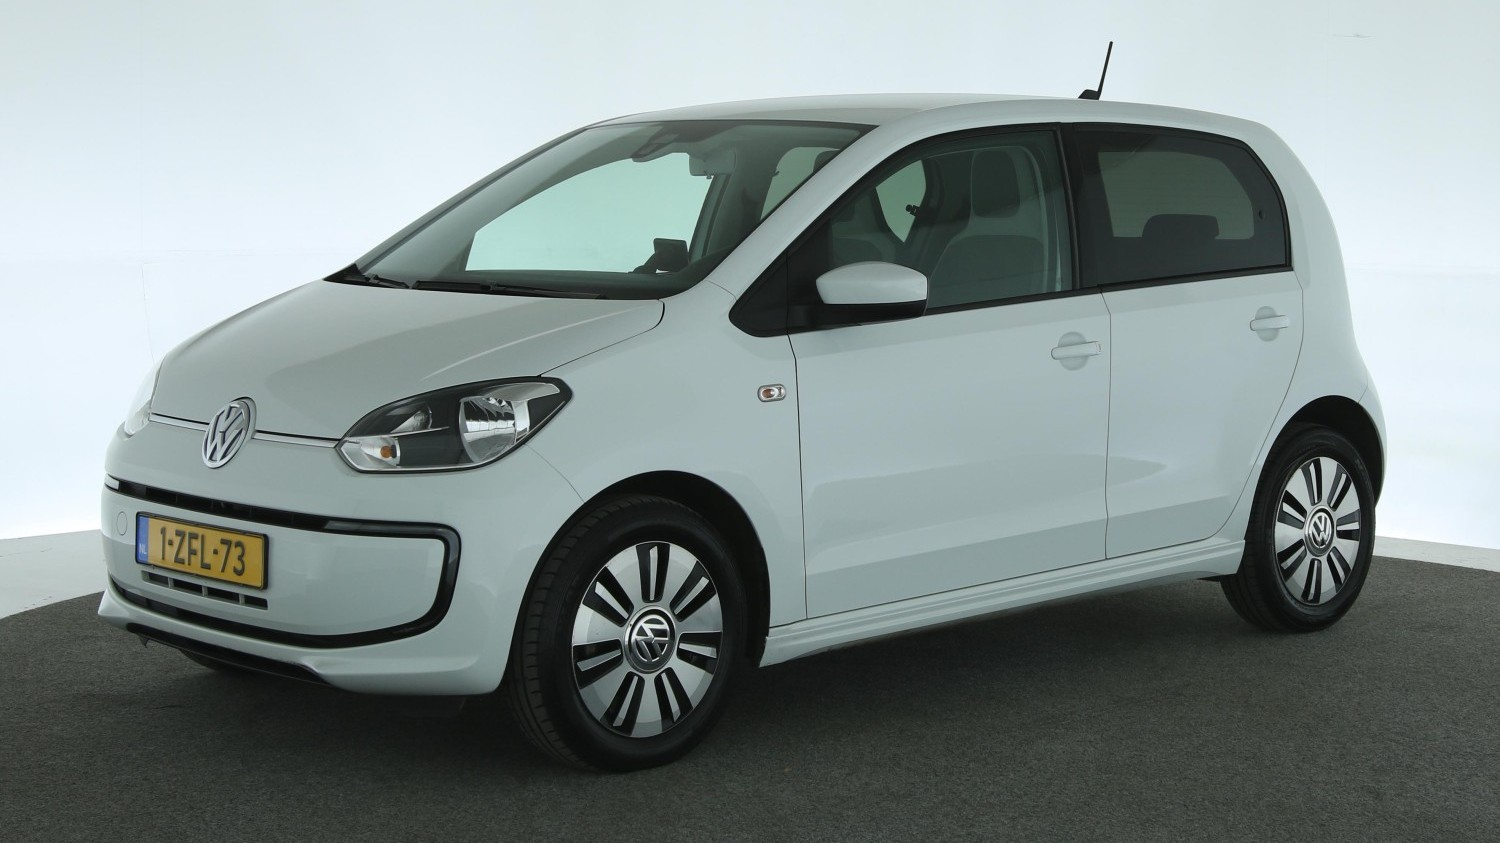 Volkswagen e-Up! Hatchback 2015 1-ZFL-73 1